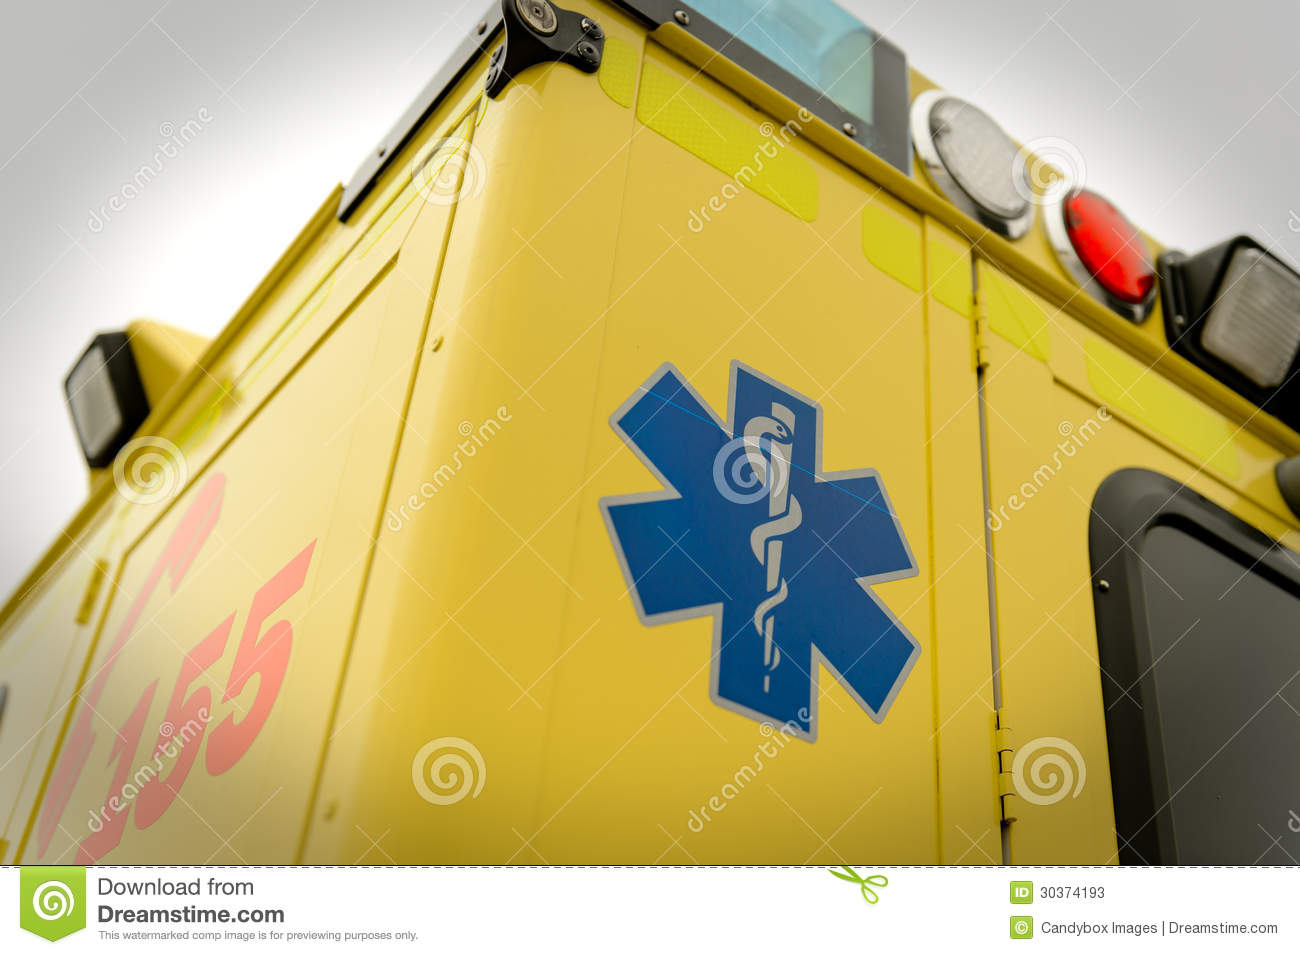 Paramedic Symbol And Phone Number Emergency Truck Stock Image